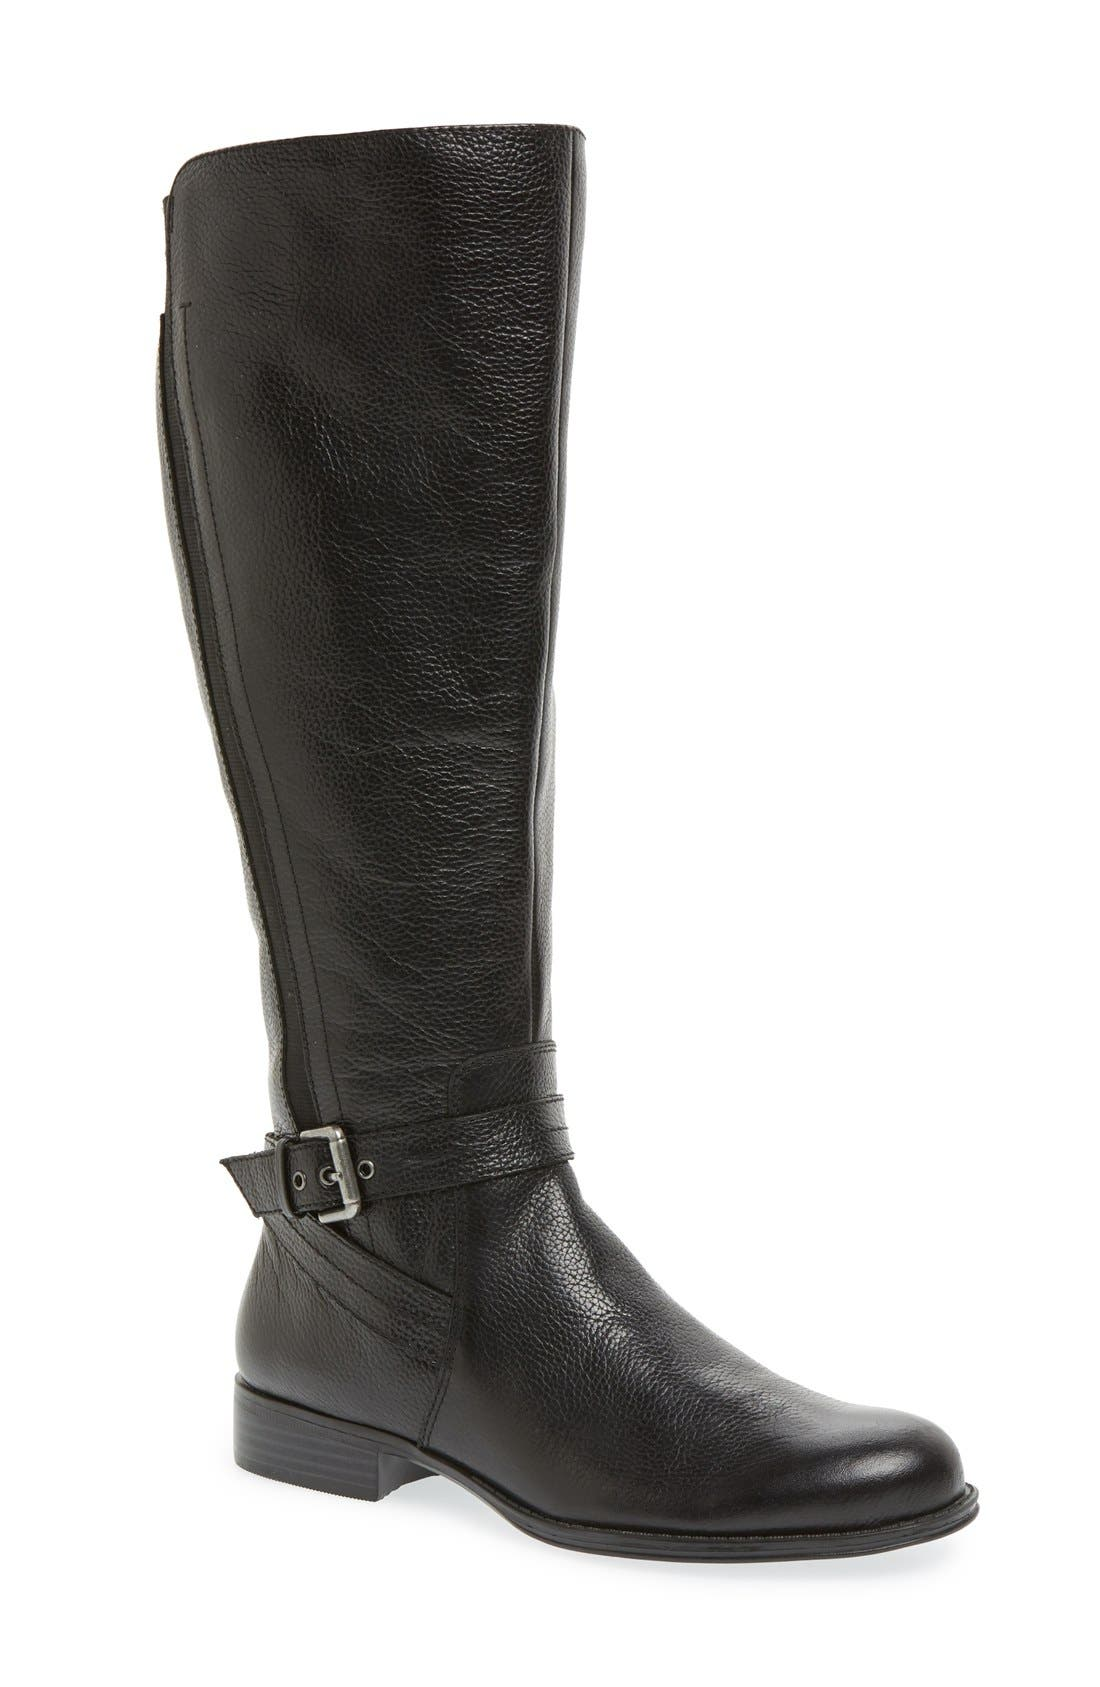 Alternate Image 1 Selected - Naturalizer 'Jelina' Riding Boot (Women) (Wide Calf)